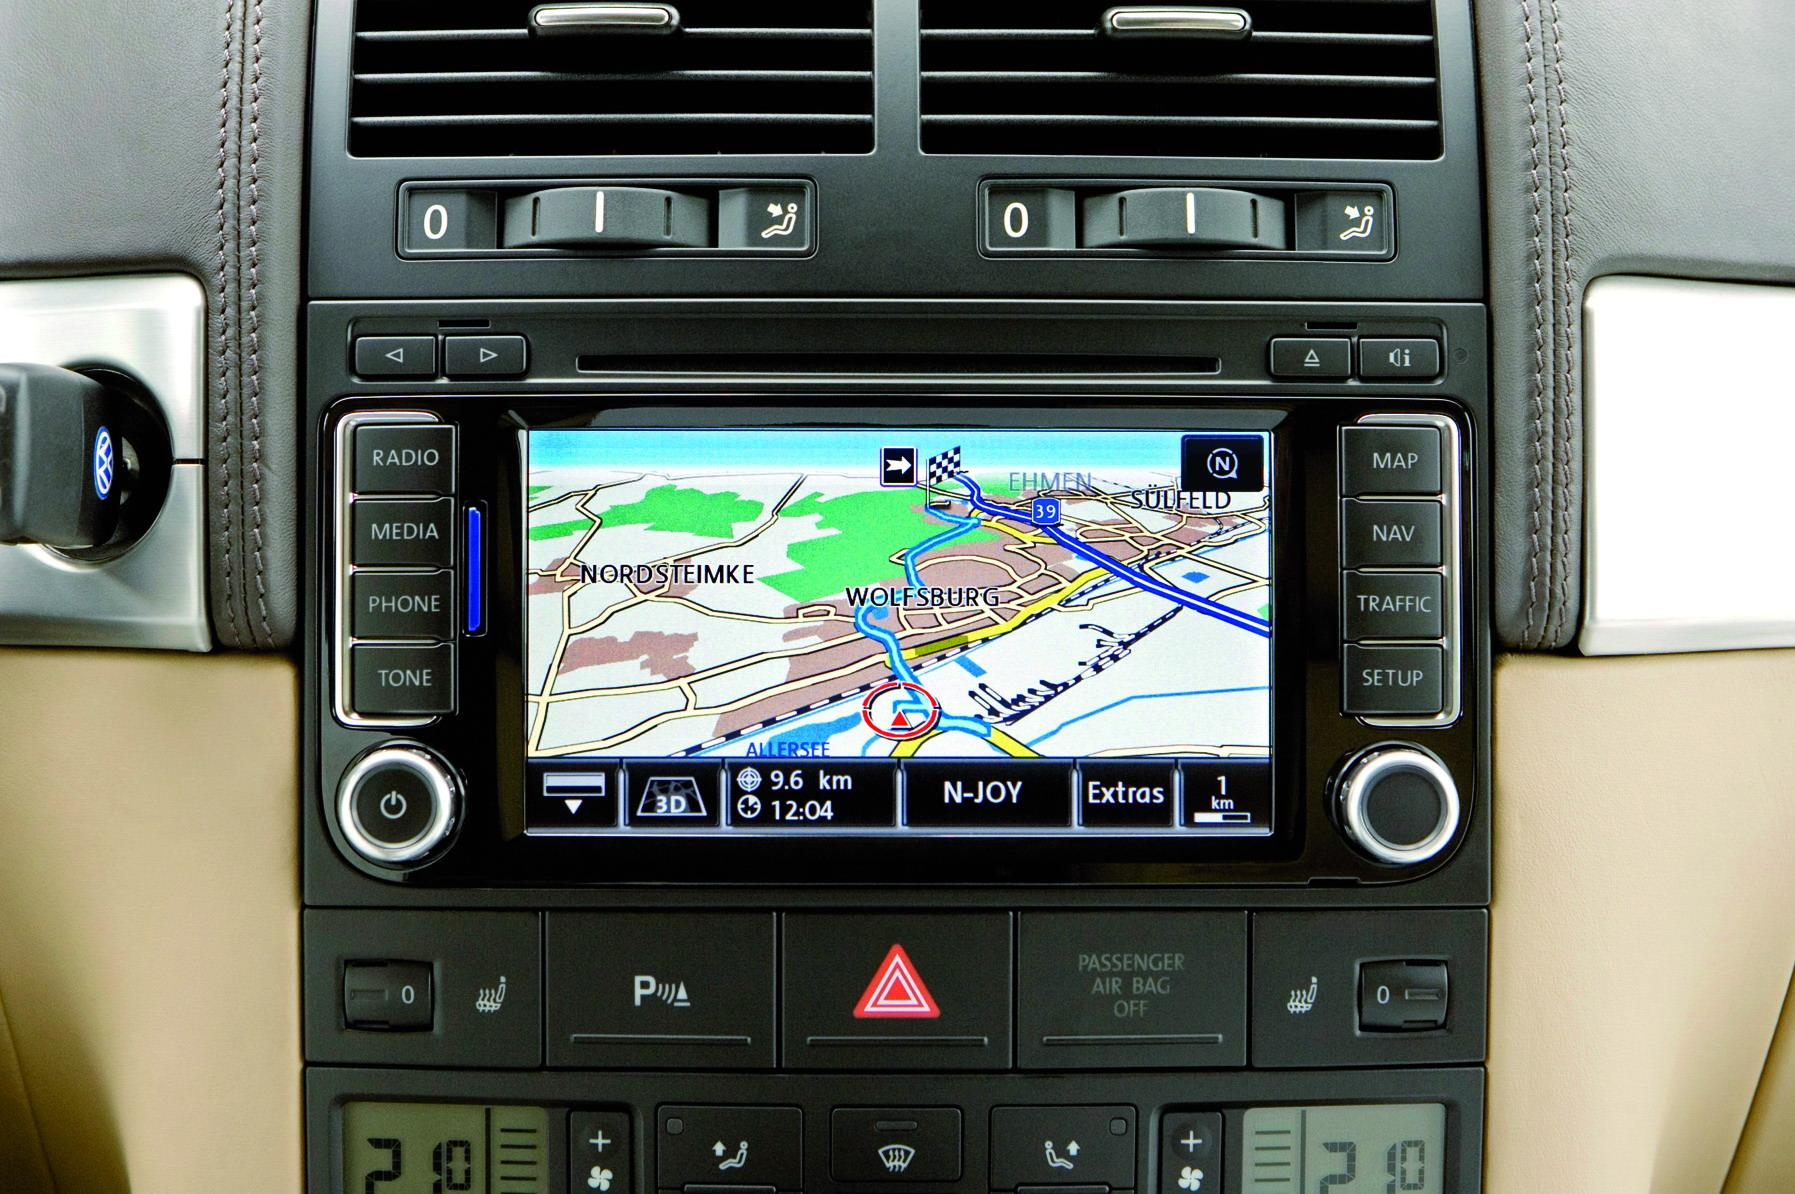 Rns 510 2018 >> RNS 510 Radio Navigation System For The Volkswagen Touareg Pictures, Photos, Wallpapers. | Top Speed